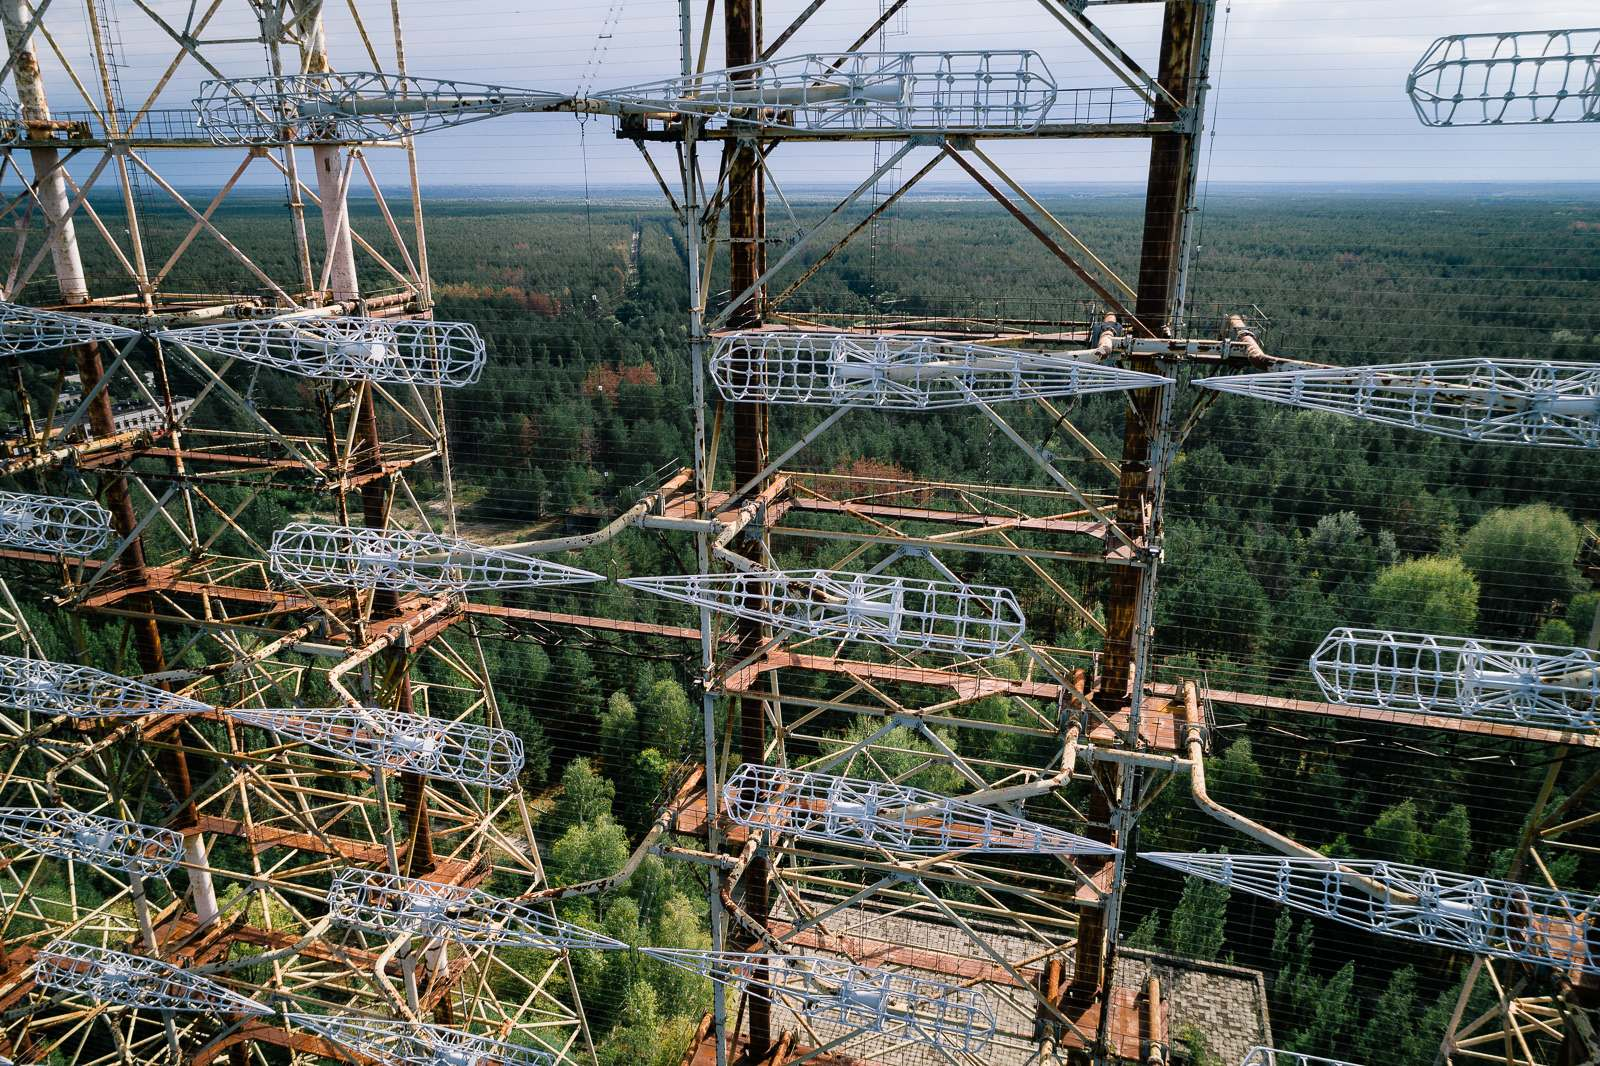 duga1 Duga known as the Russian Woodpecker   Military Radar Station in Chernobyls Irradiated Forest